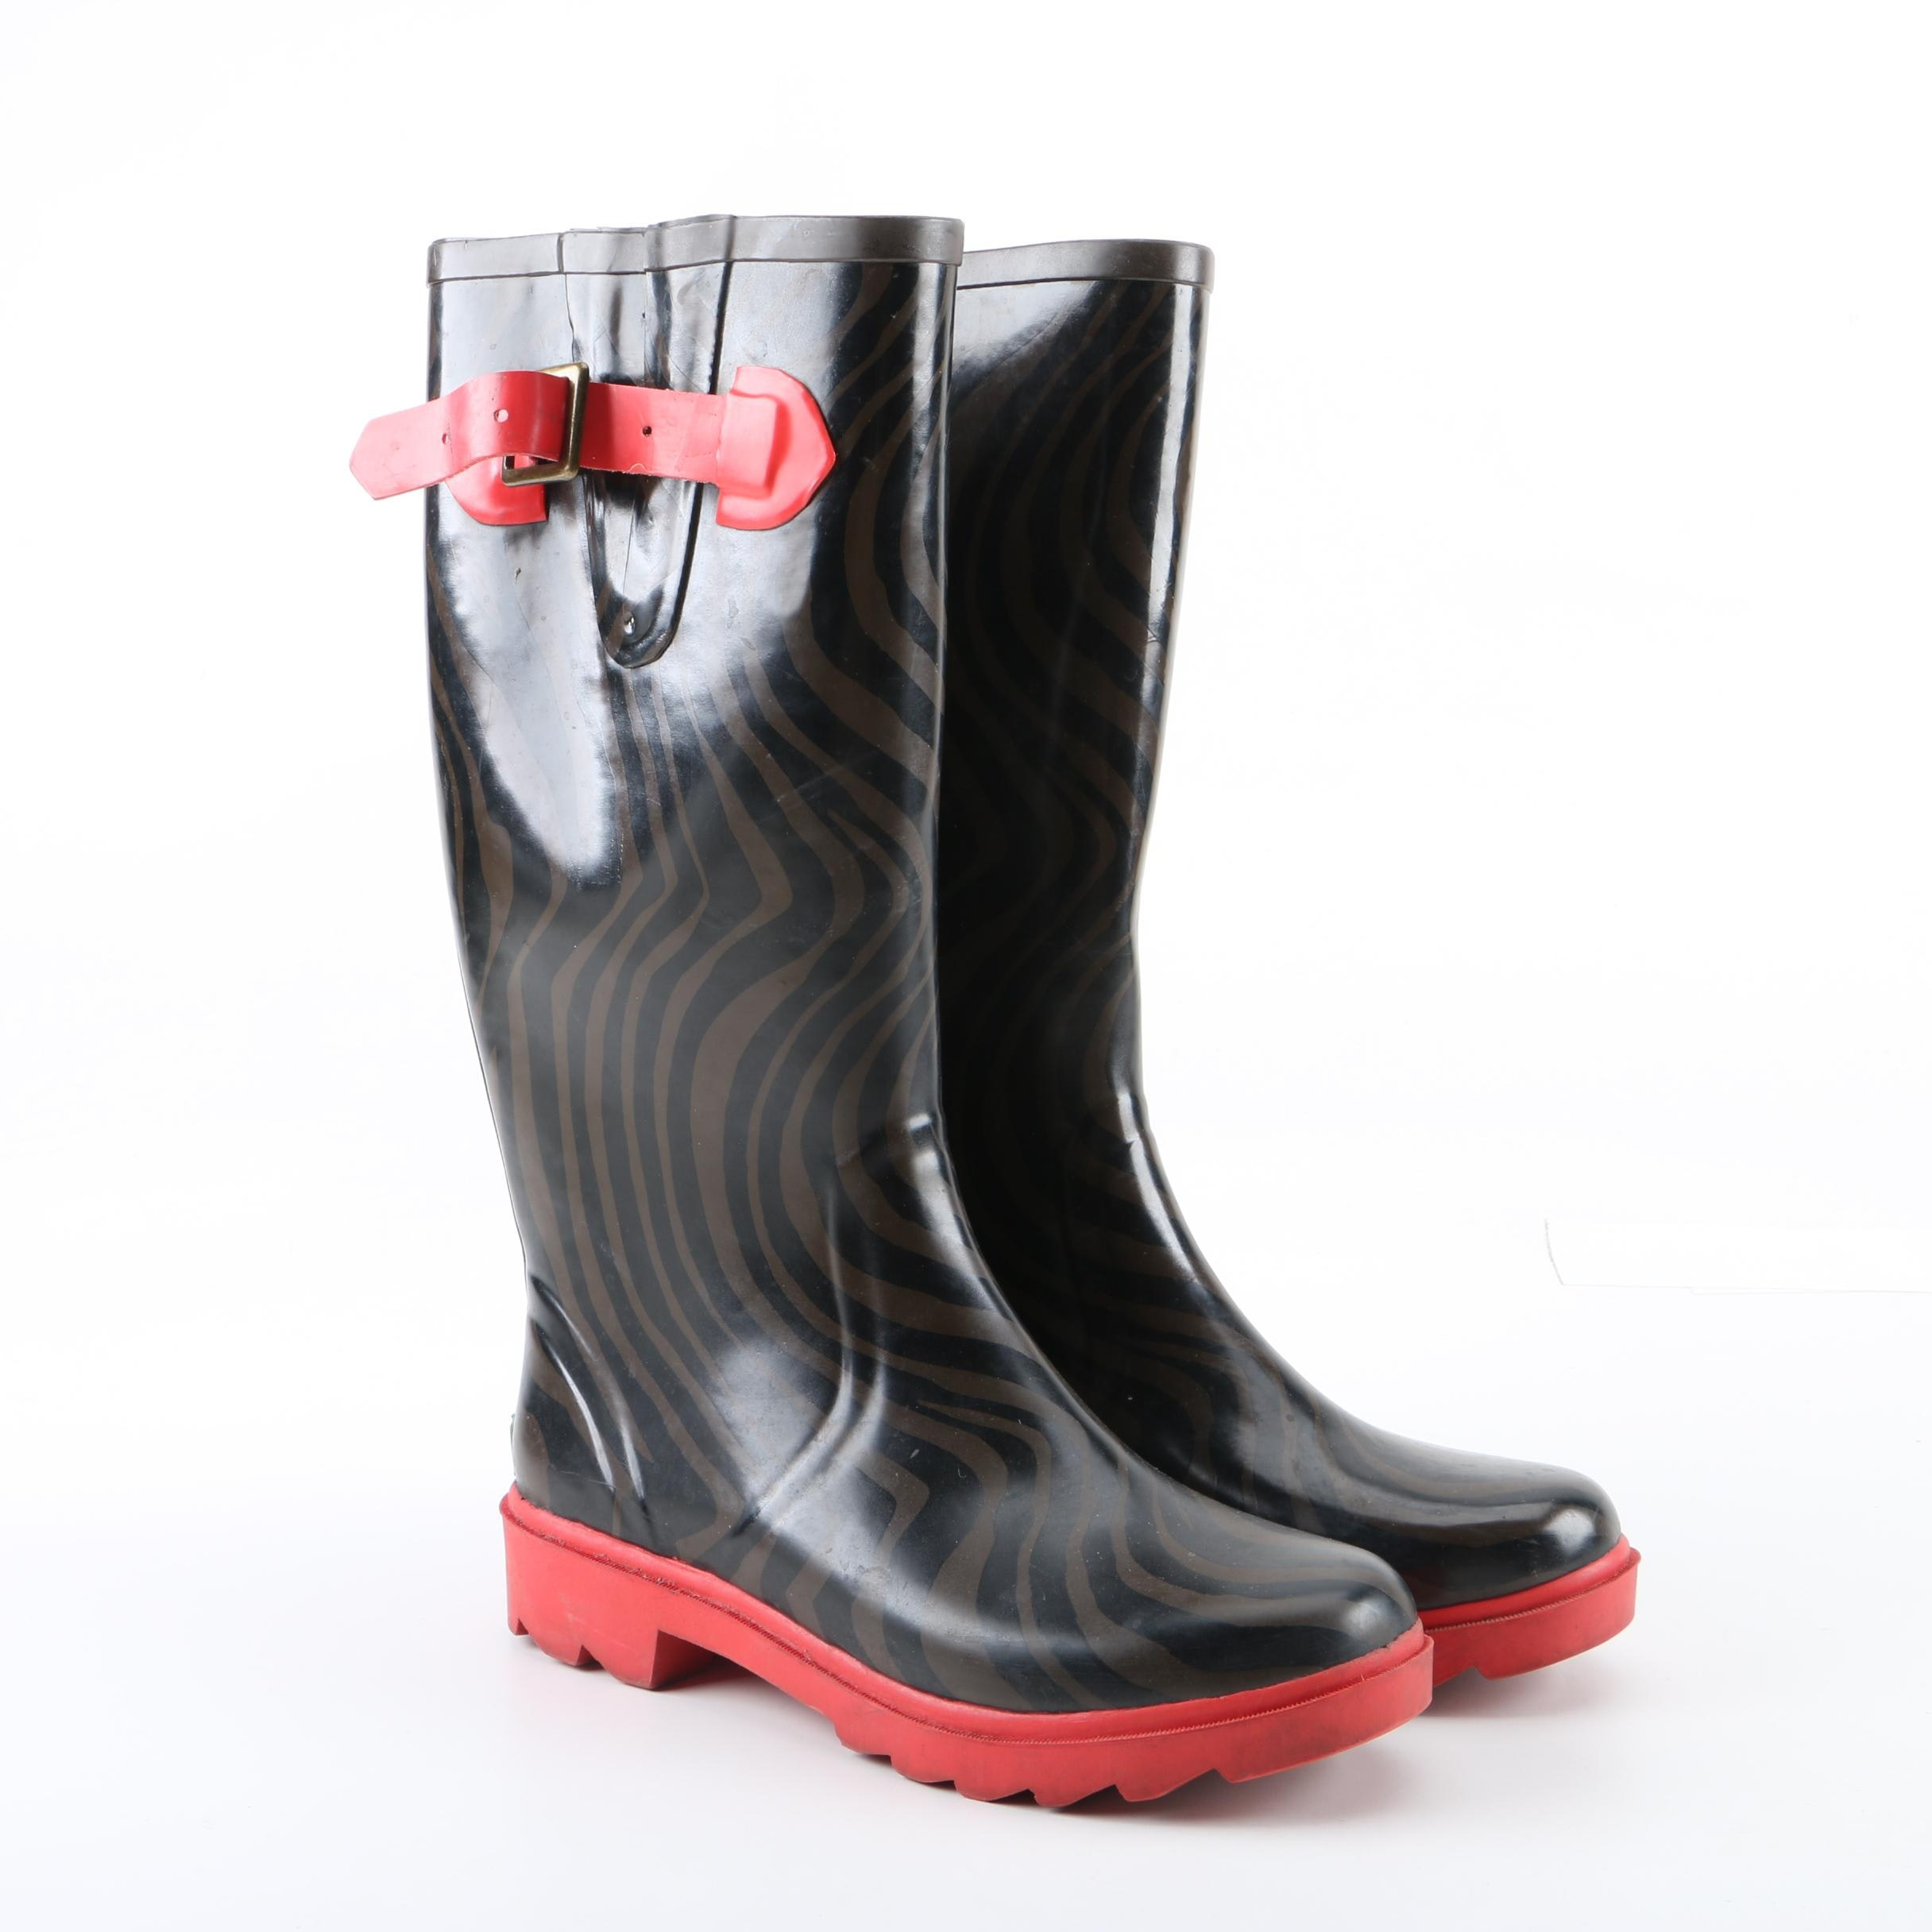 Women's Kate Spade New York Black and Brown Rubber Rain Boots